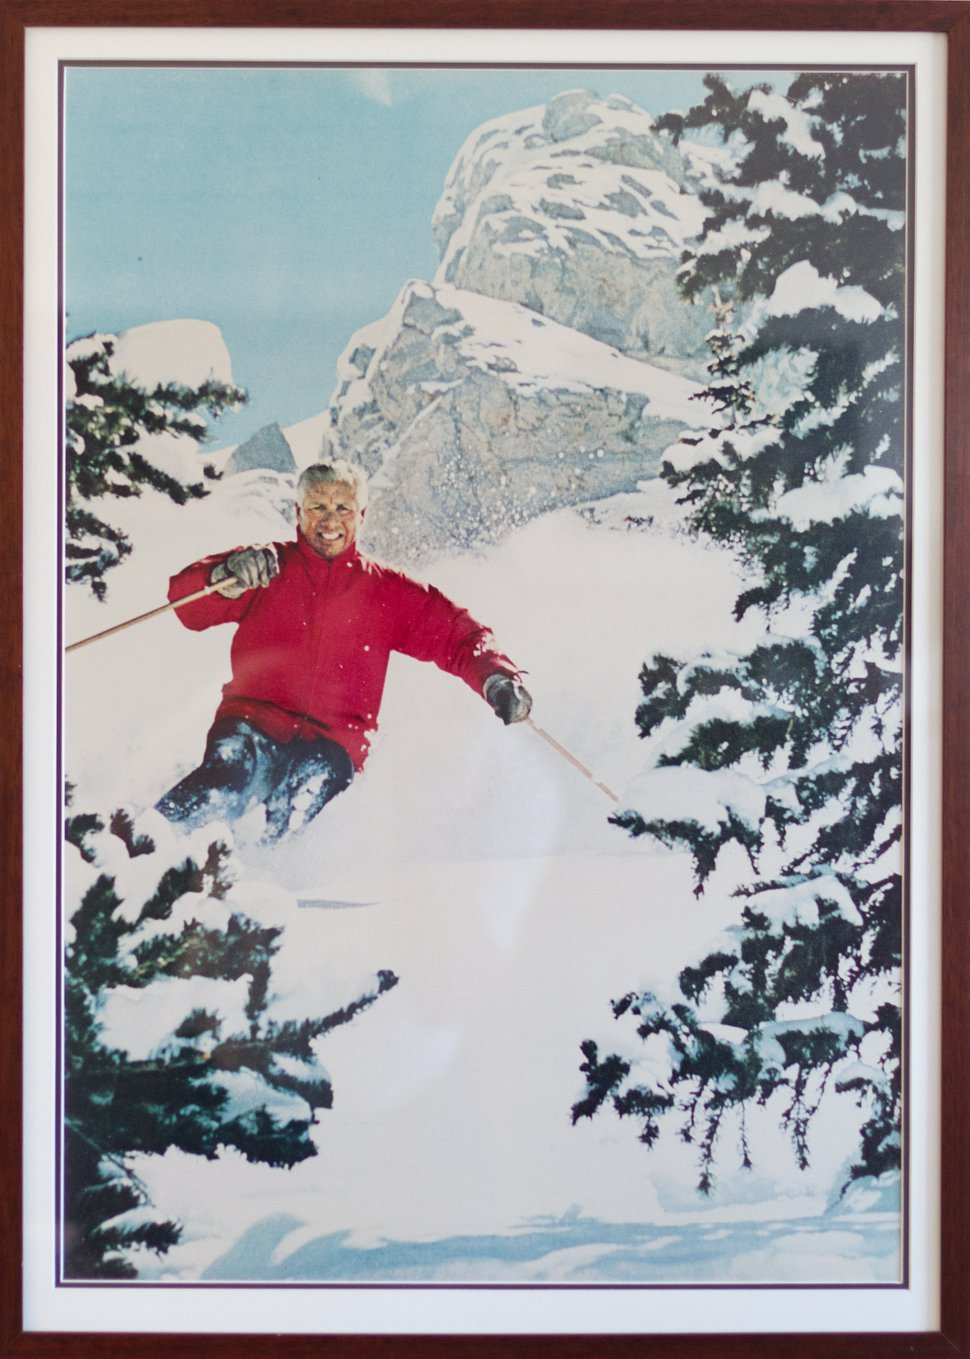 Snowbird co-founder Ted Johnson elegantly carves a turn through powder at the resort he and Texas oilman Dick Bass brought into existence in 1971.